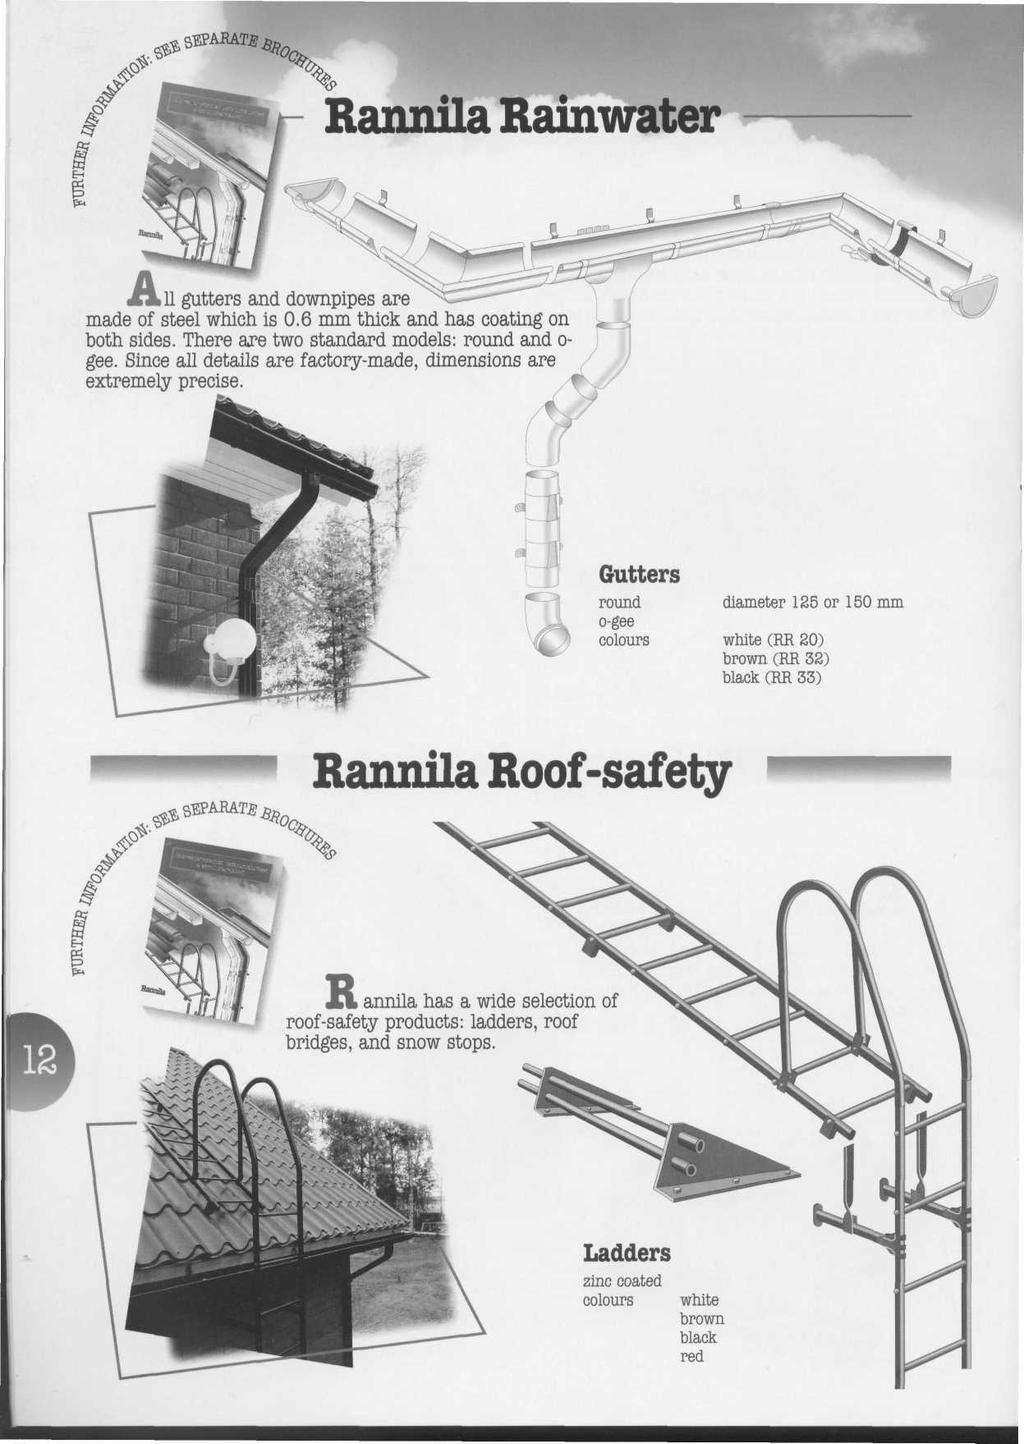 Rannila Rainwater Л1 gutters and downpipes are made of steel which is 0.6 mm thick and has coating on both sides. There are two standard models: round and o- gee.